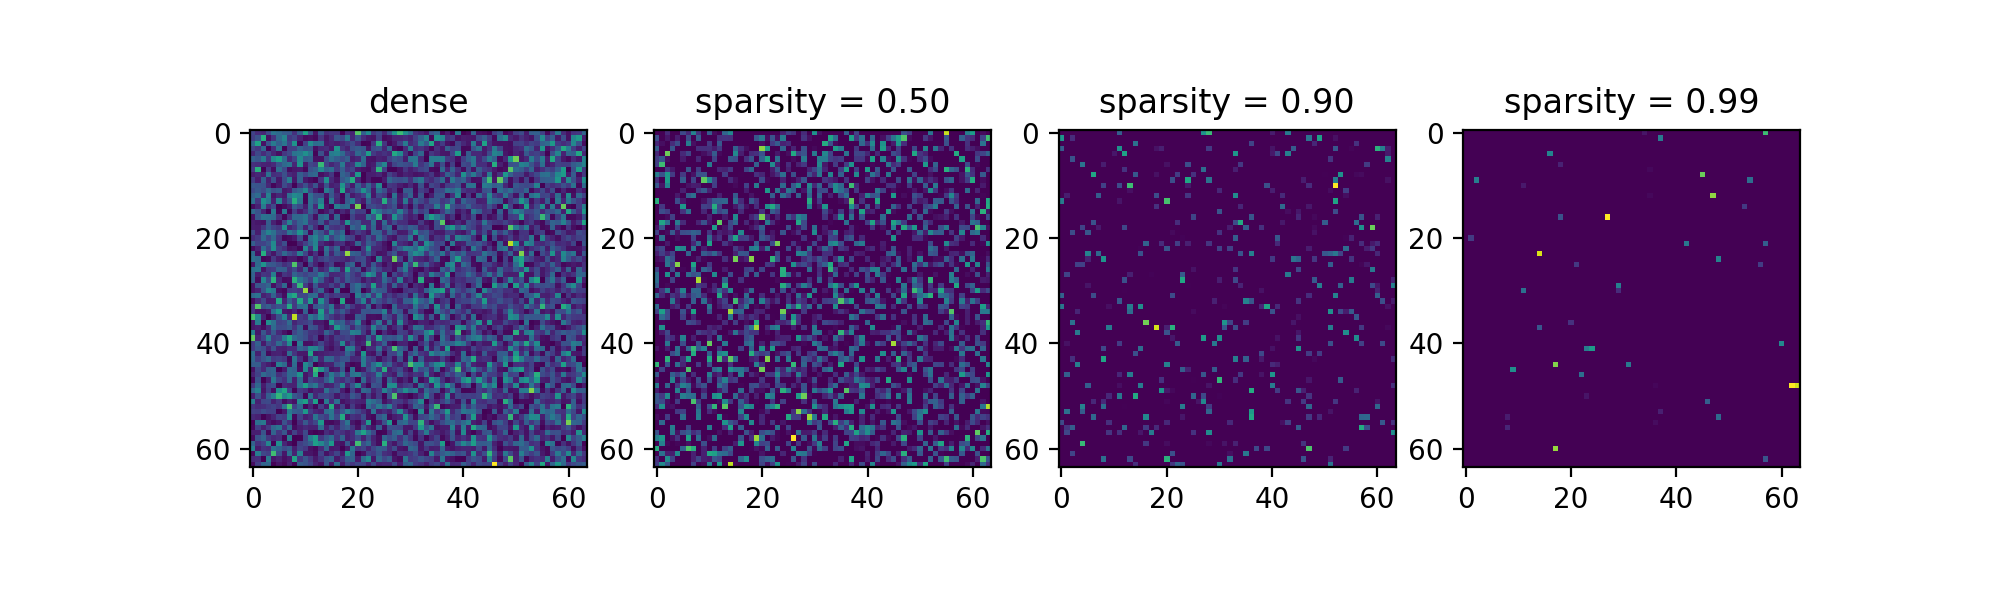 Matrices with increasing sparsity